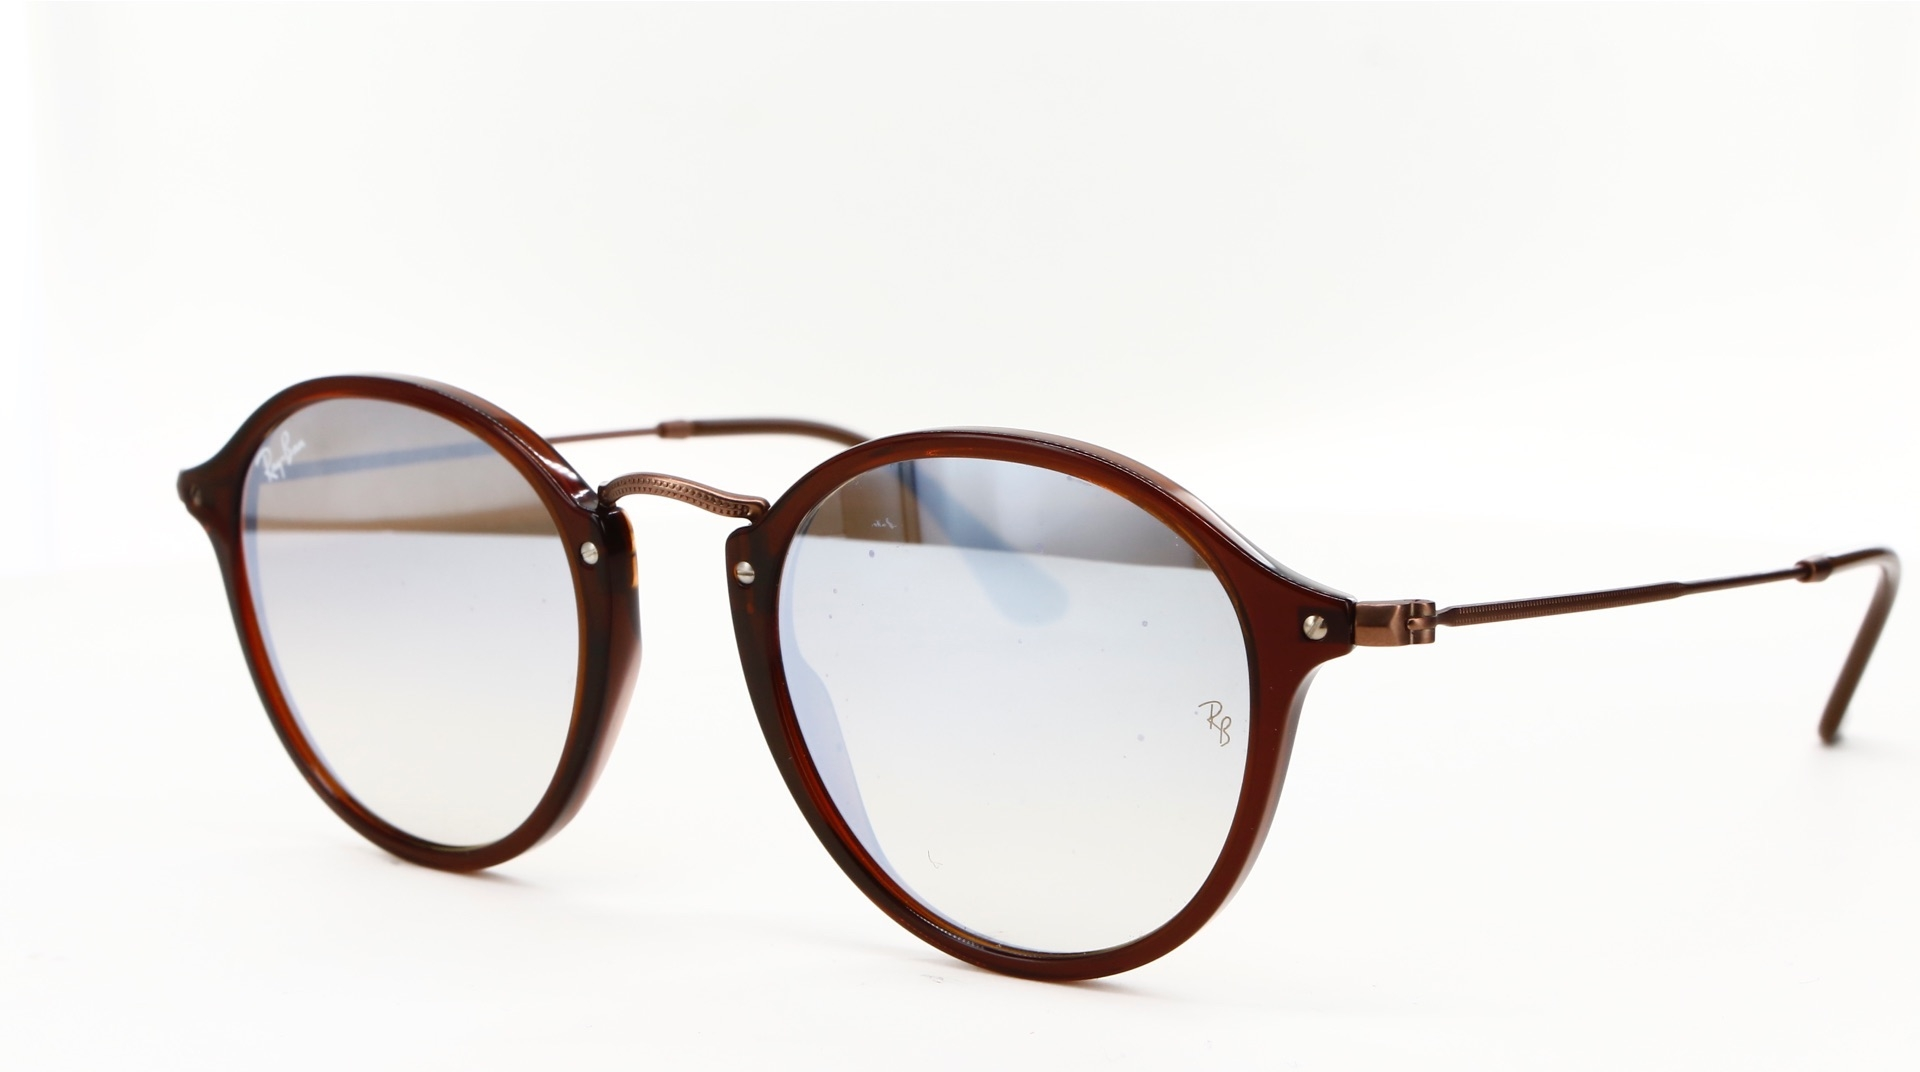 Ray-Ban - ref: 76835